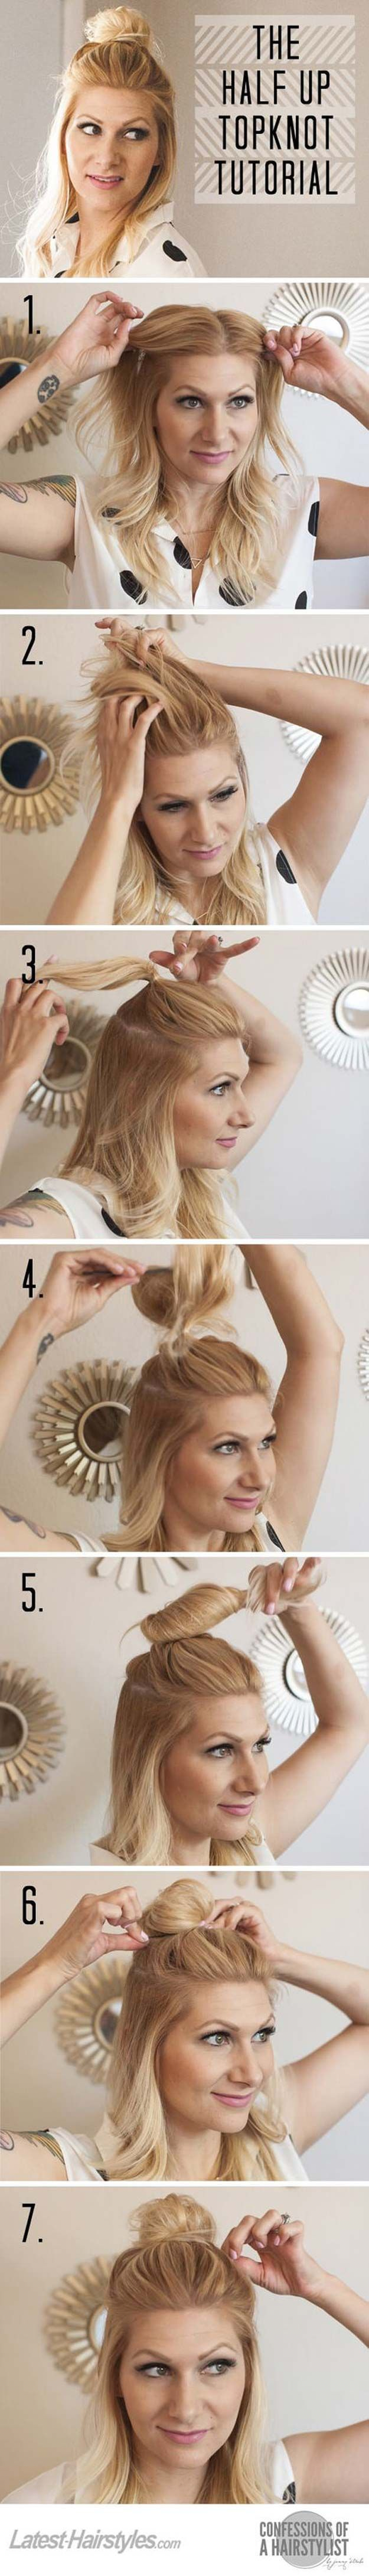 Cool and Easy DIY Hairstyles - The Half Up Top Knot - Quick and Easy Ideas for Back to School Styles for Medium, Short and Long Hair - Fun Tips and Best Step by Step Tutorials for Teens, Prom, Weddings, Special Occasions and Work. Up dos, Braids, Top Knots and Buns, Super Summer Looks http://diyprojectsforteens.com/diy-cool-easy-hairstyles